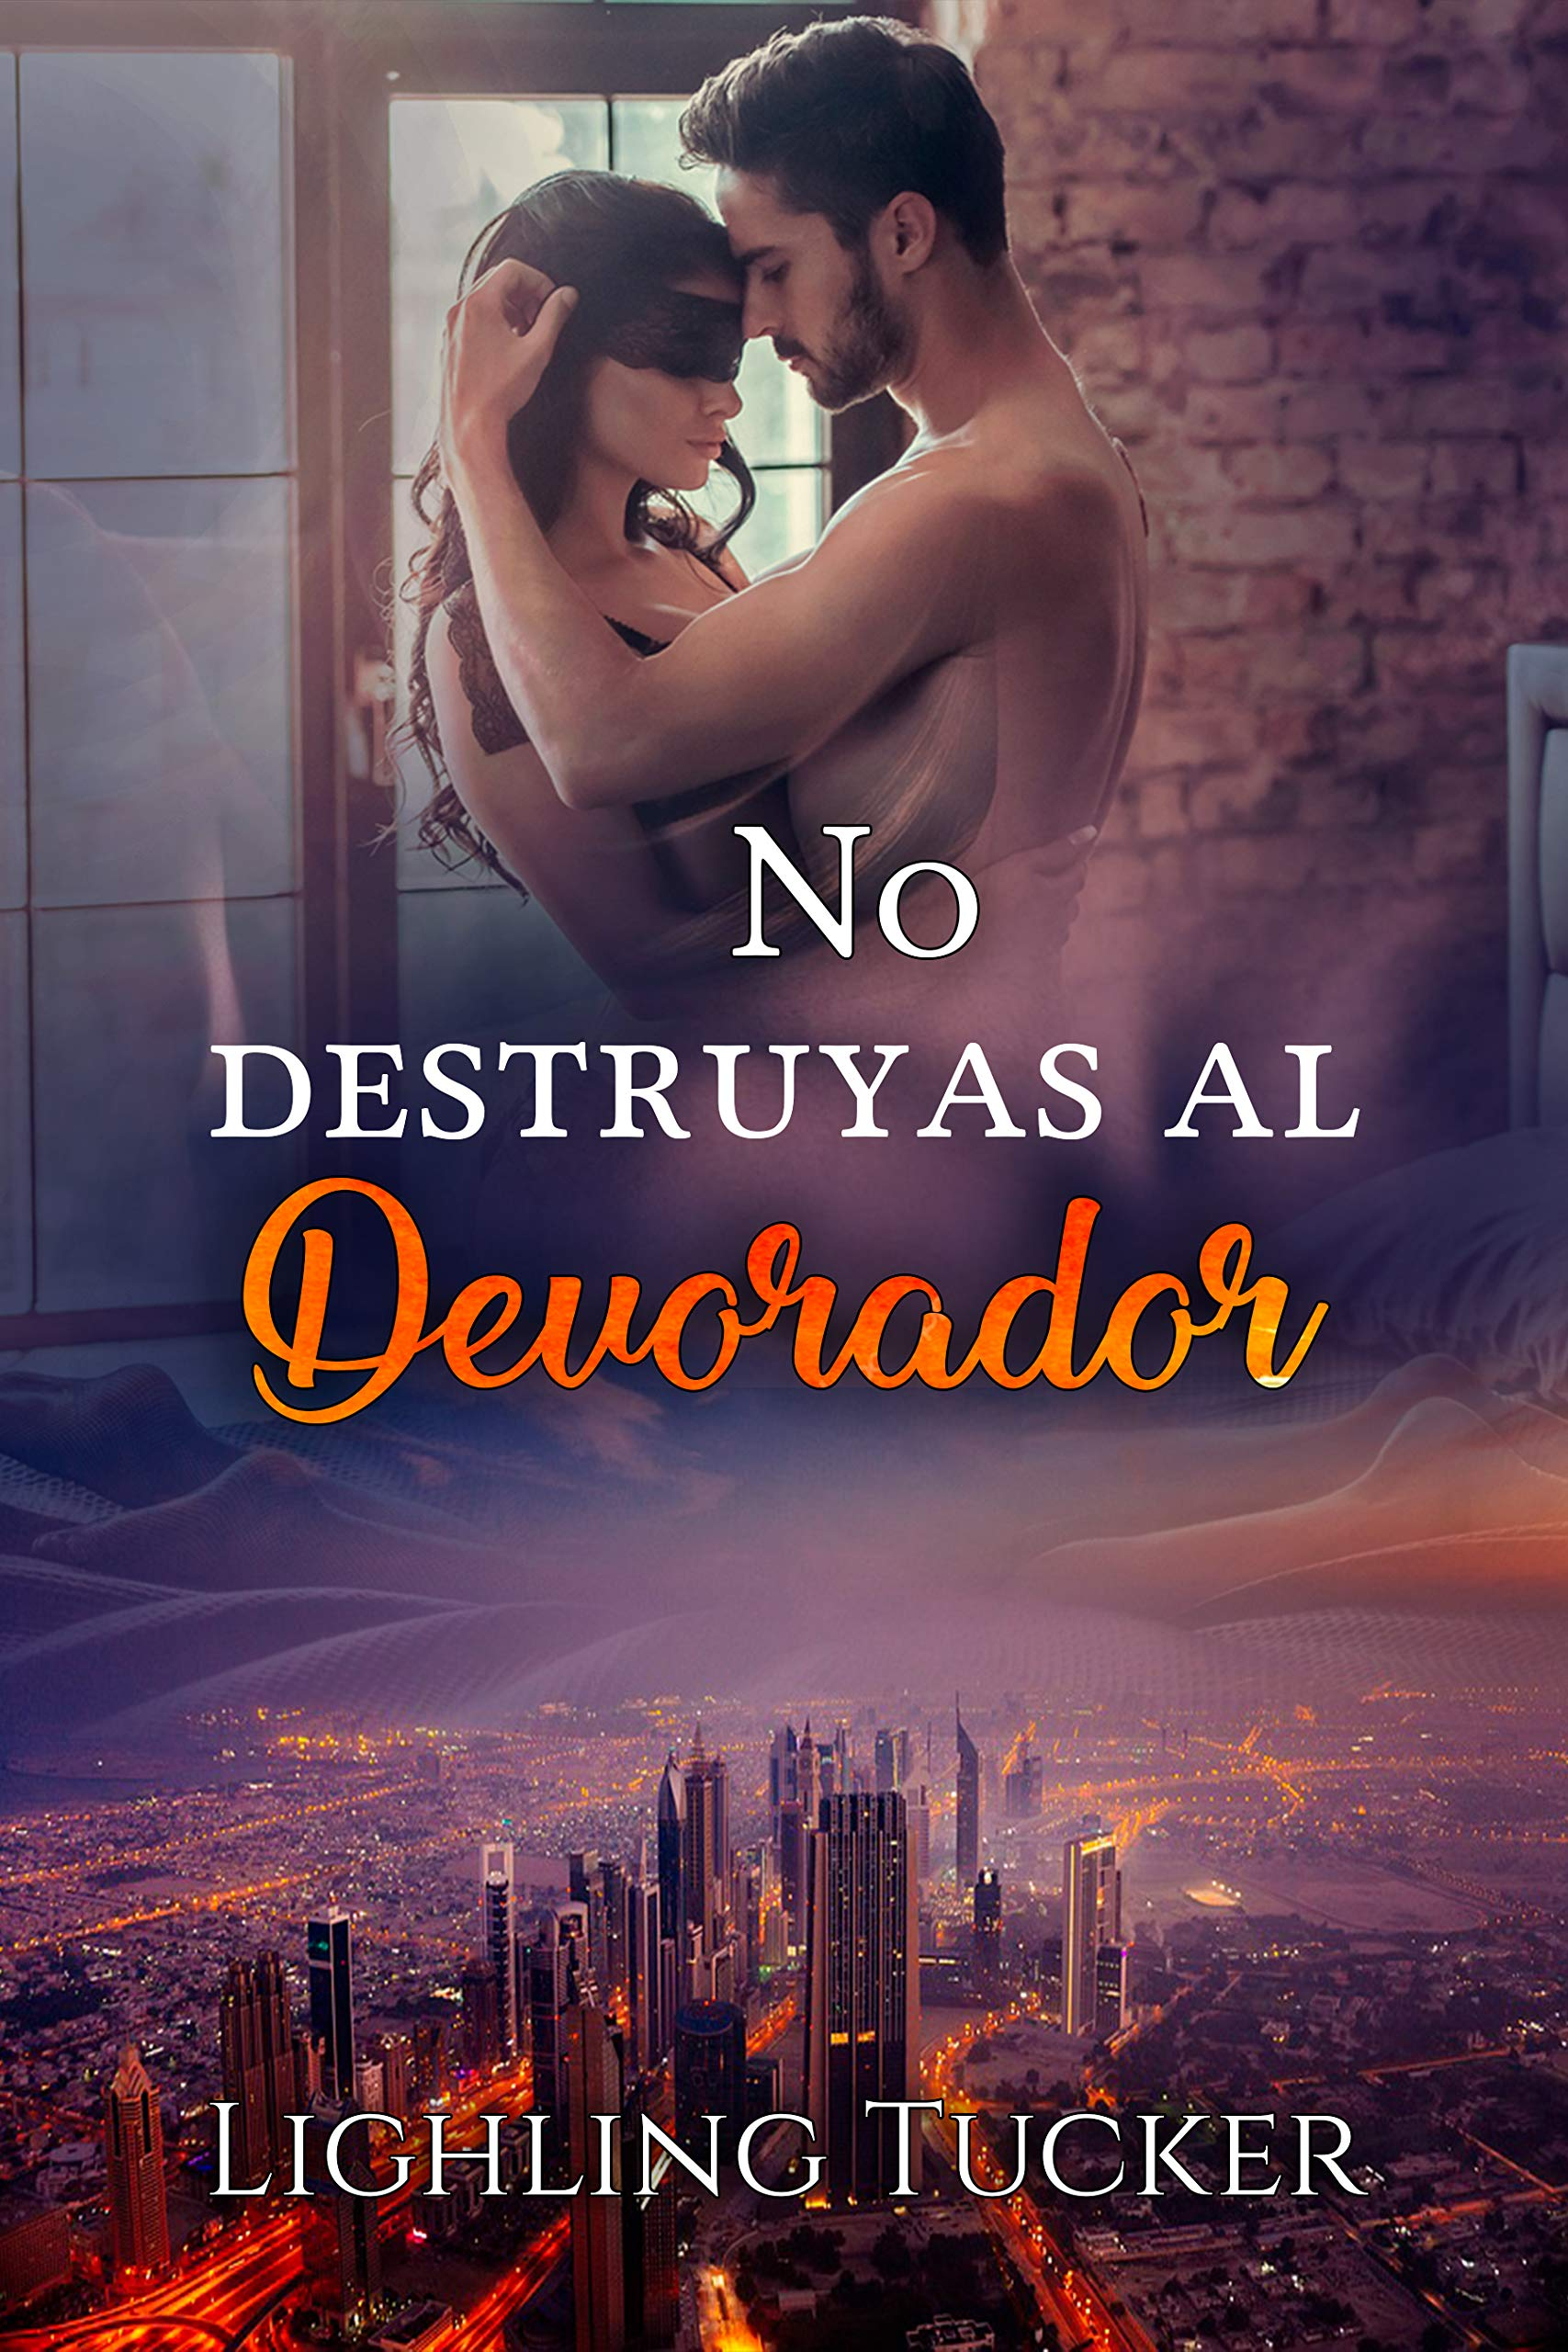 No destruyas al Devorador: (romántica, autoconclusivo) por Lighling Tucker